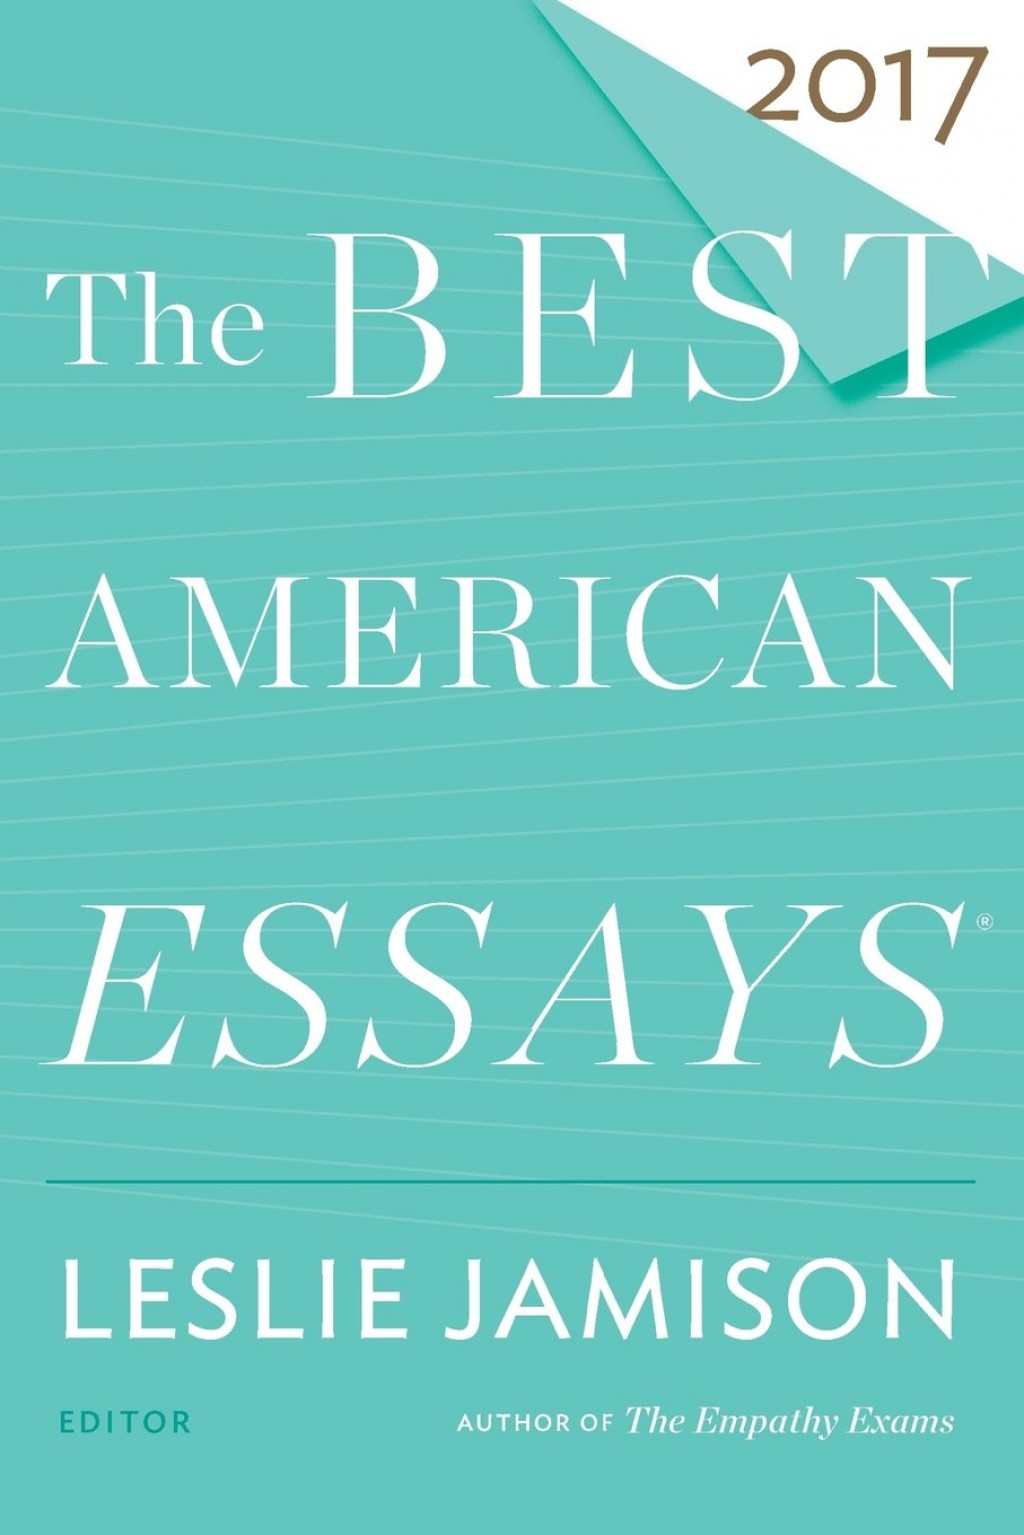 001 61tzl Nruvl Essay Example Best American Striking Essays 2017 Table Of Contents The Century Pdf Large